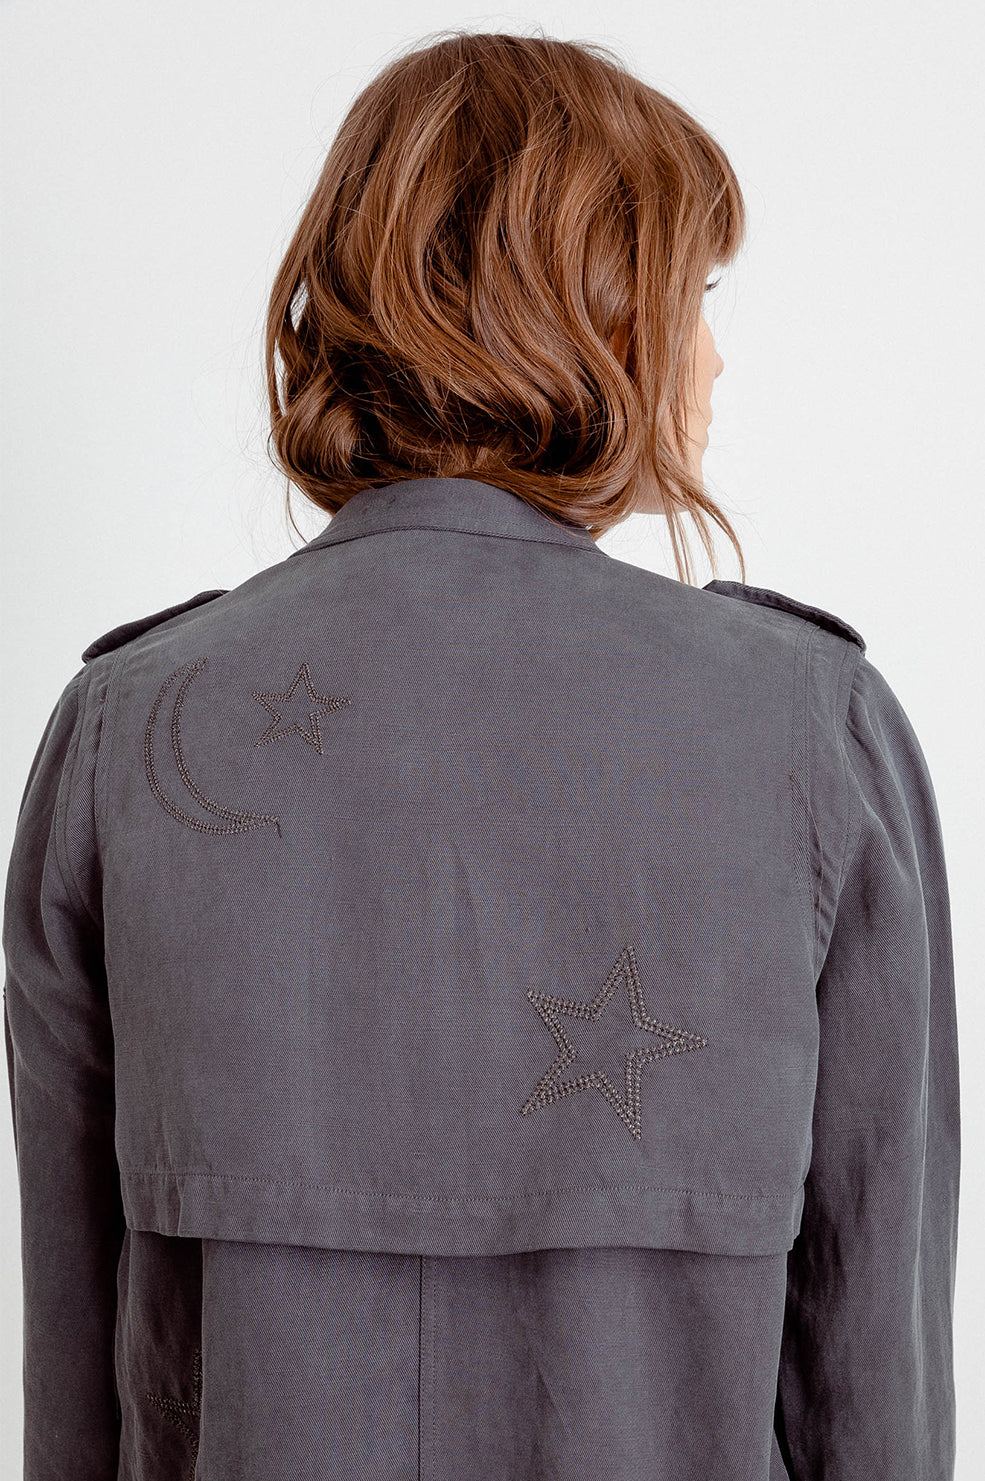 PRE-ORDER ROWEN - DARK GREY WITH STAR EMBROIDERY